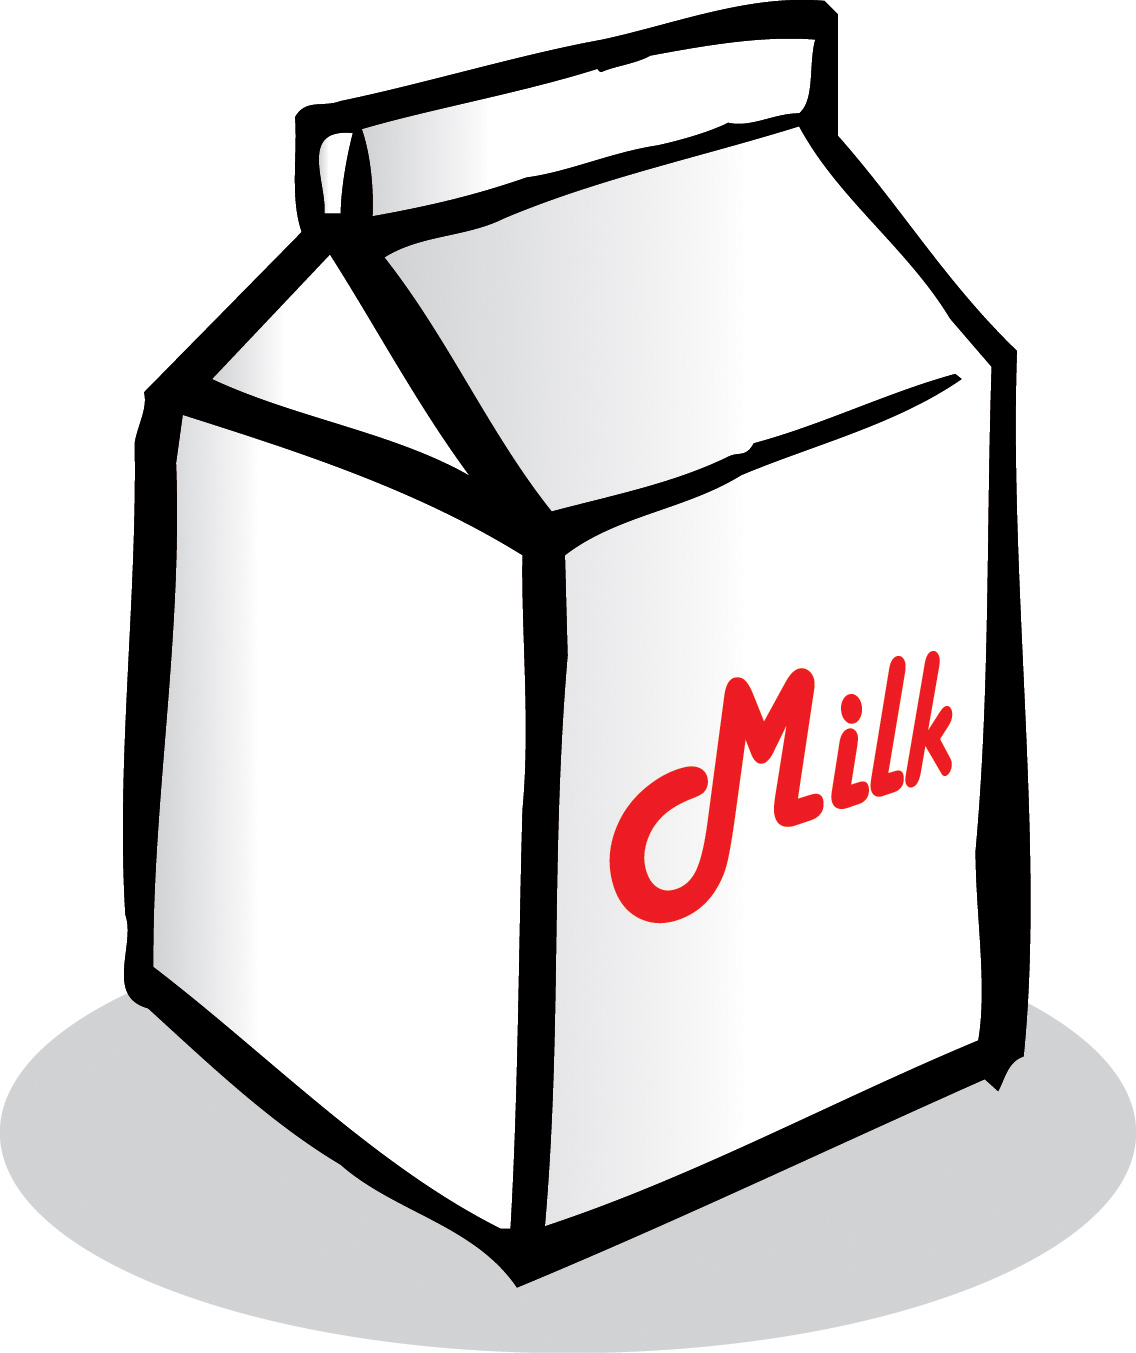 1136x1353 Best Milk Carton Clip Art